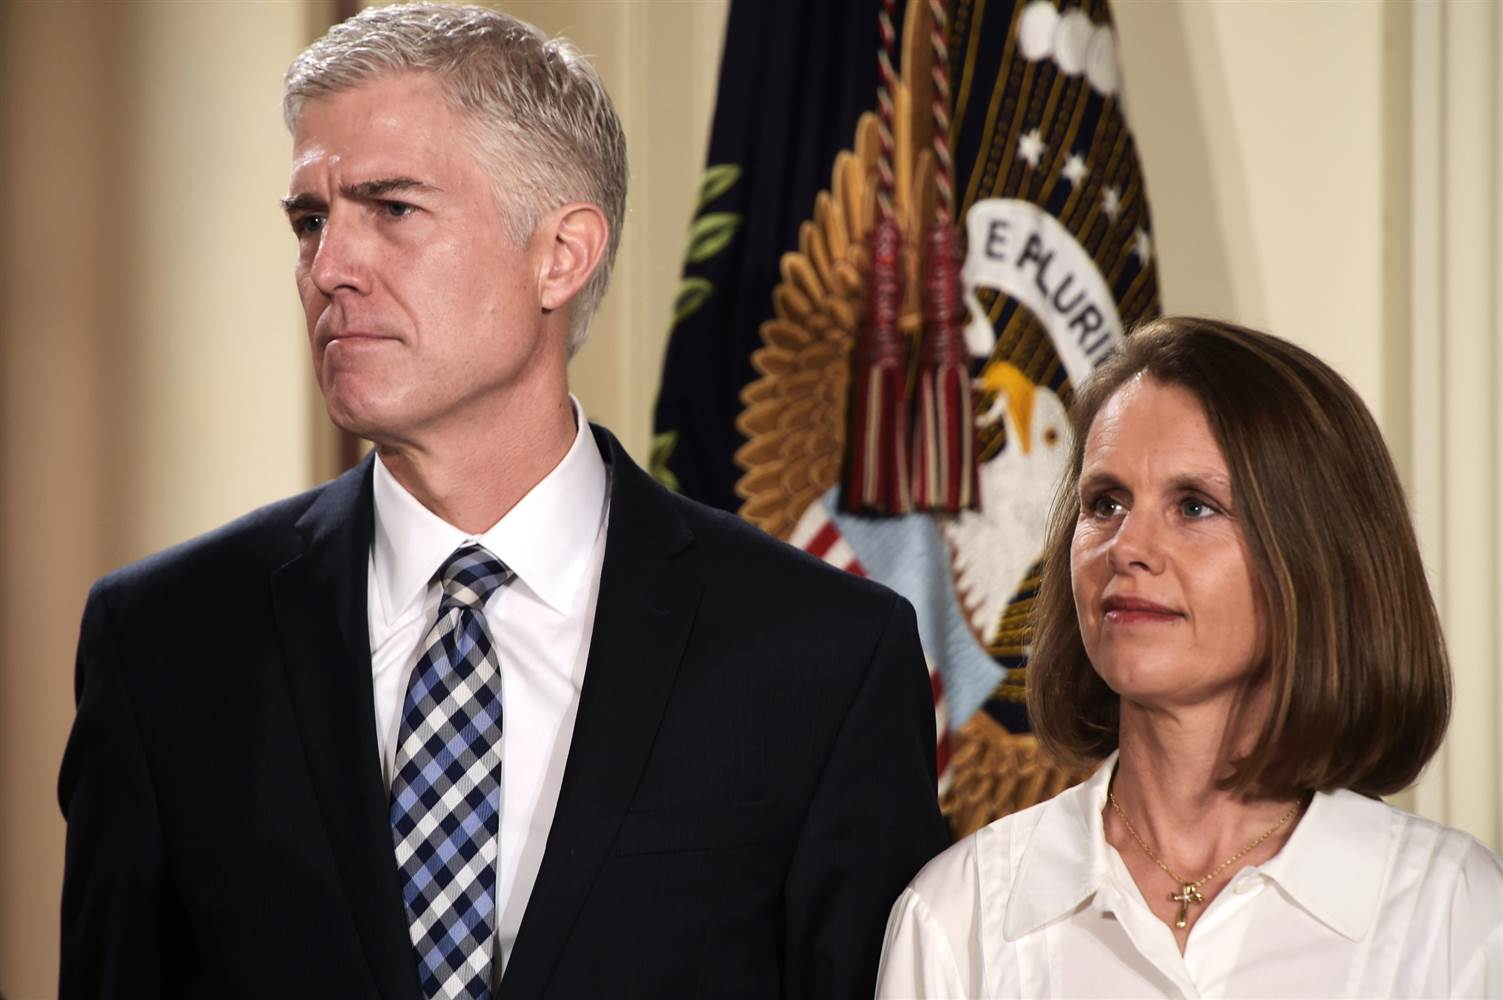 Judge Neil Gorsuch his wife Marie Louise